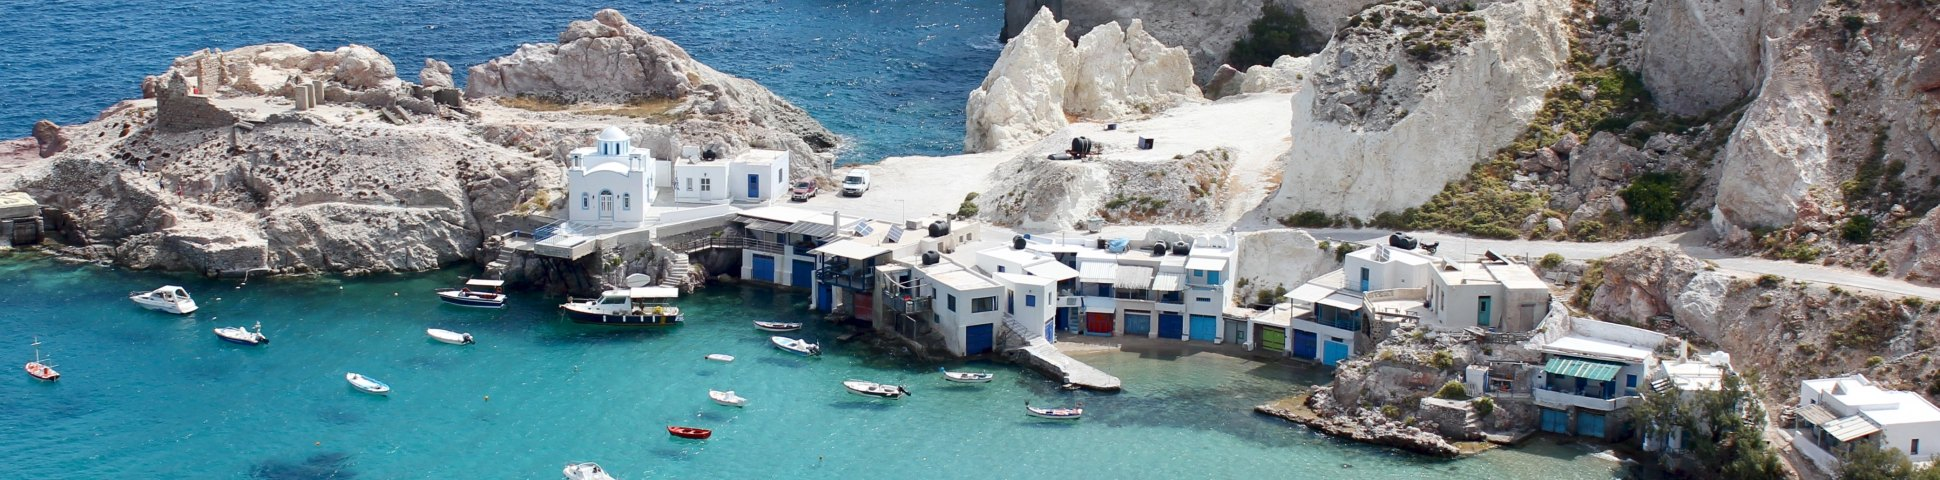 White buildings and jagged rocks on the coast of a Cyclades island surrounded by blue water with boats